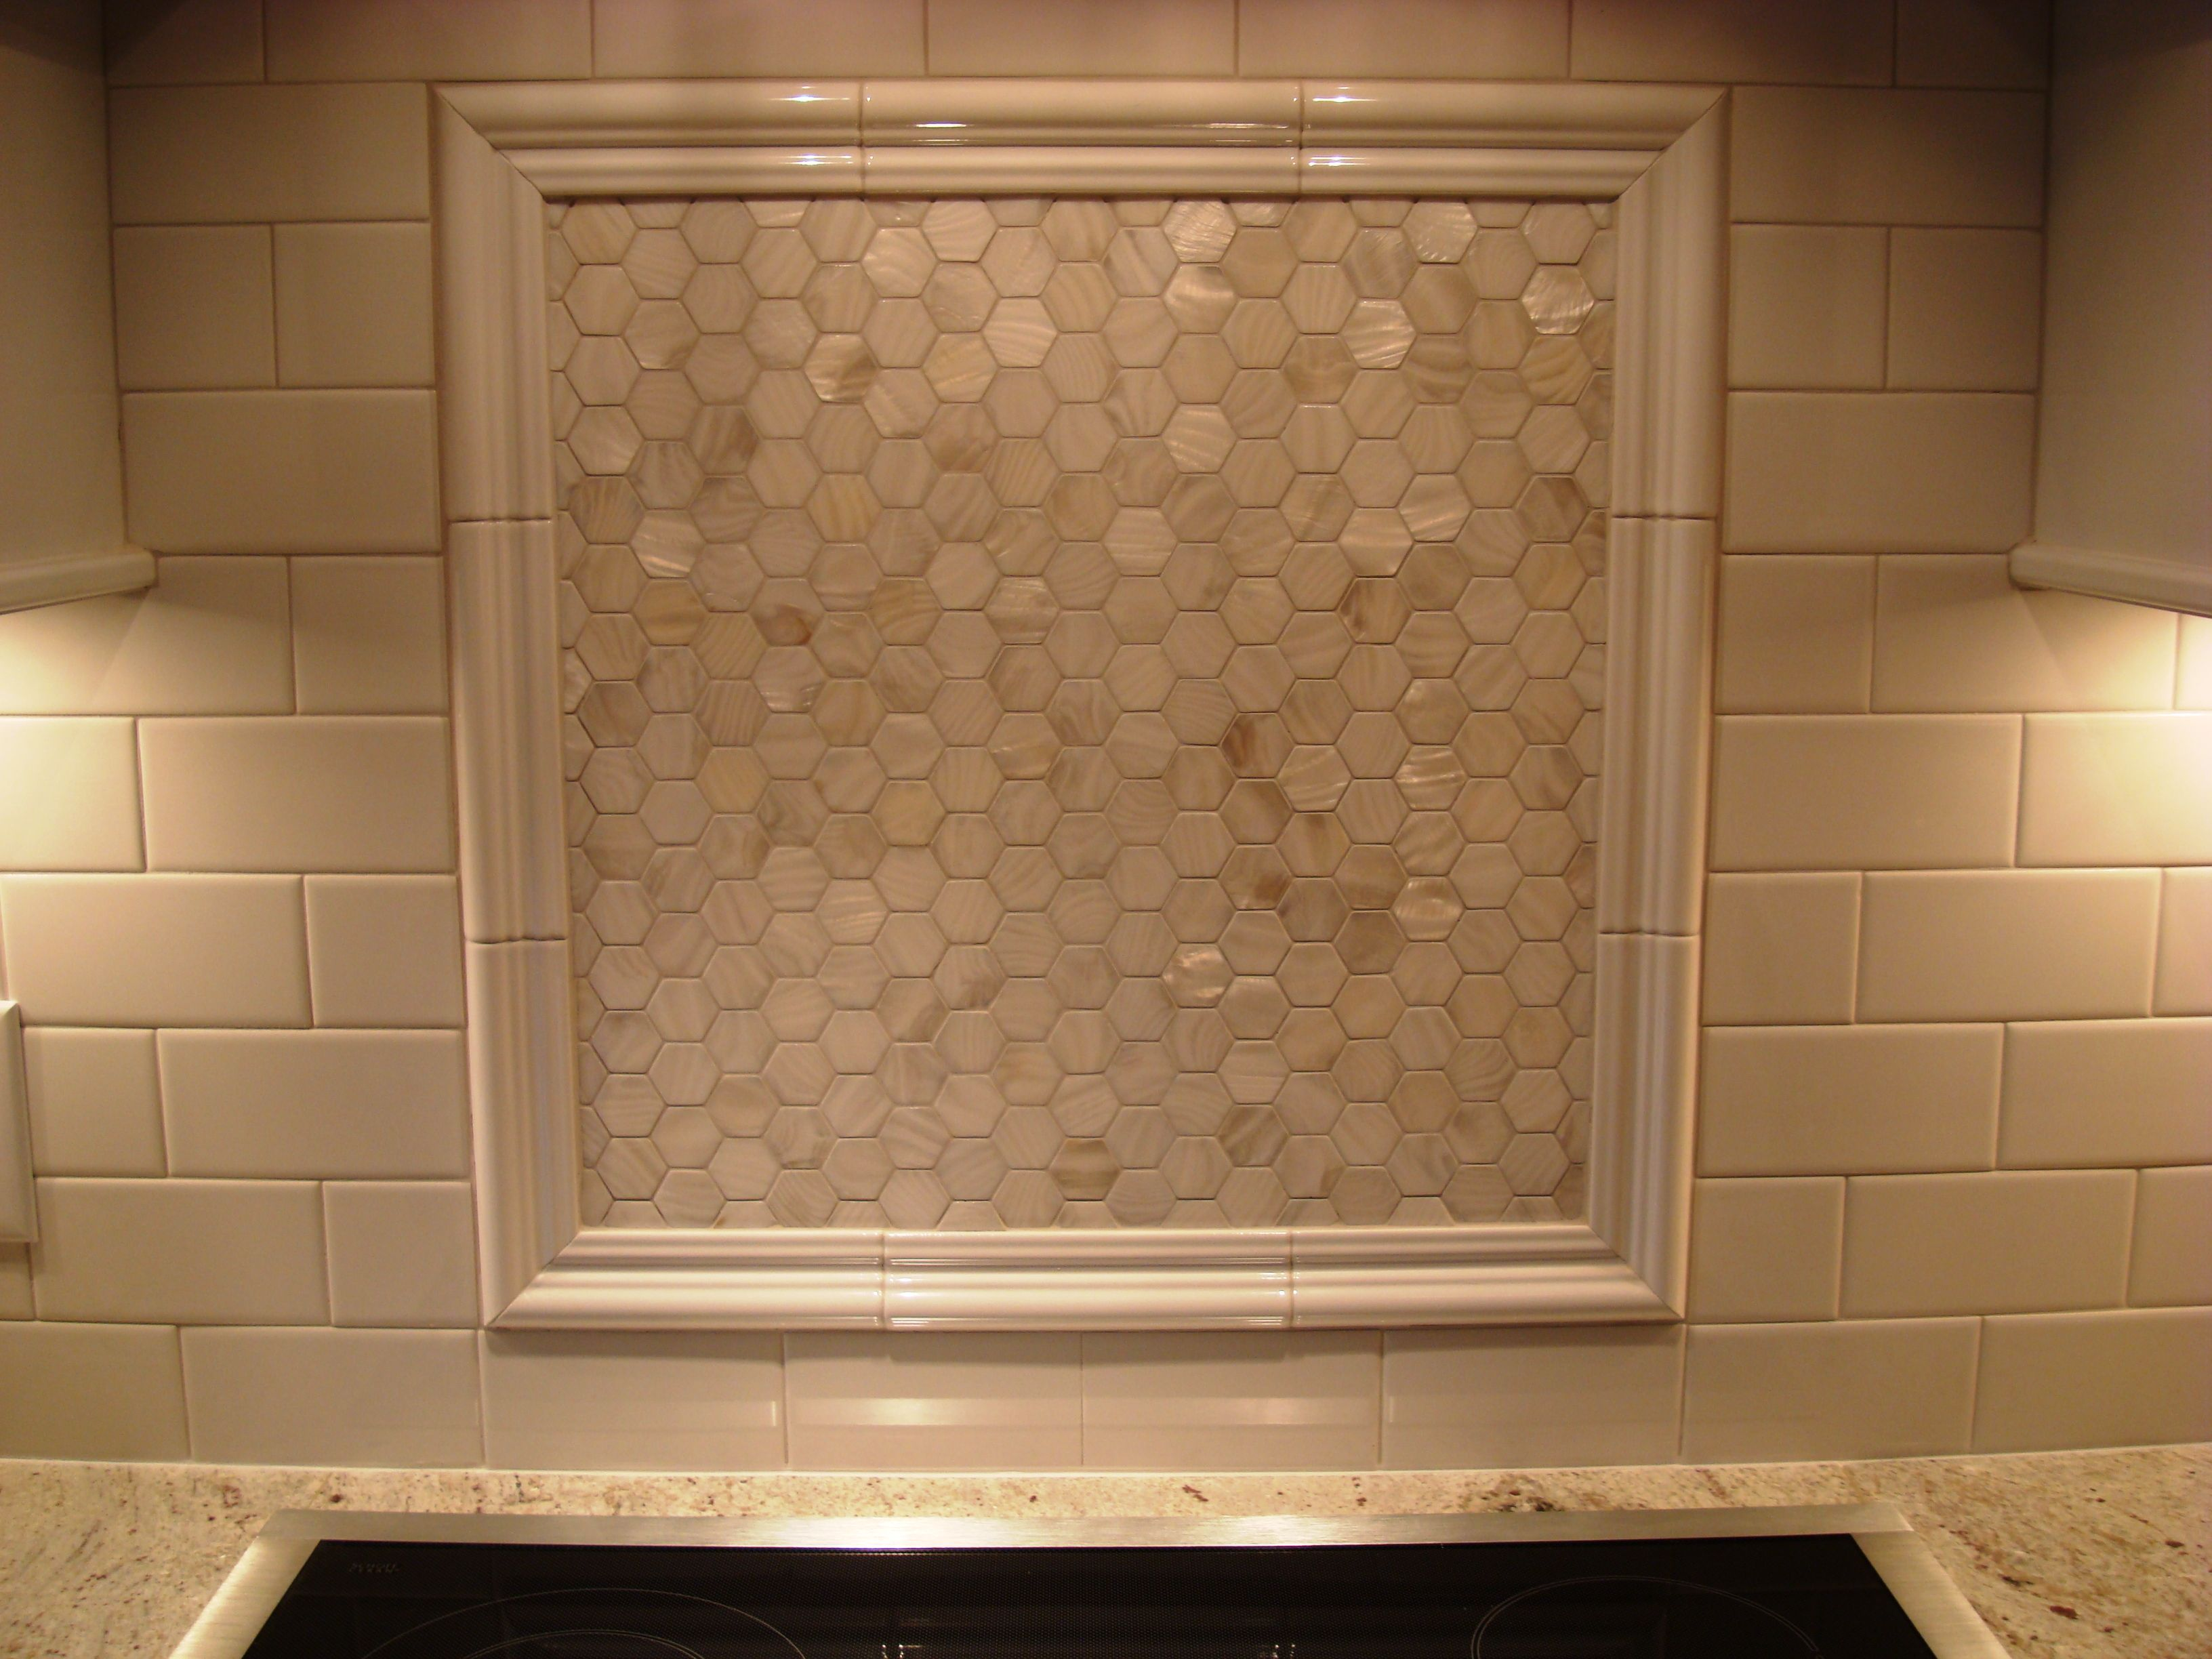 Over The Stove Backsplash The Mother Of Pearl Backsplash Above The